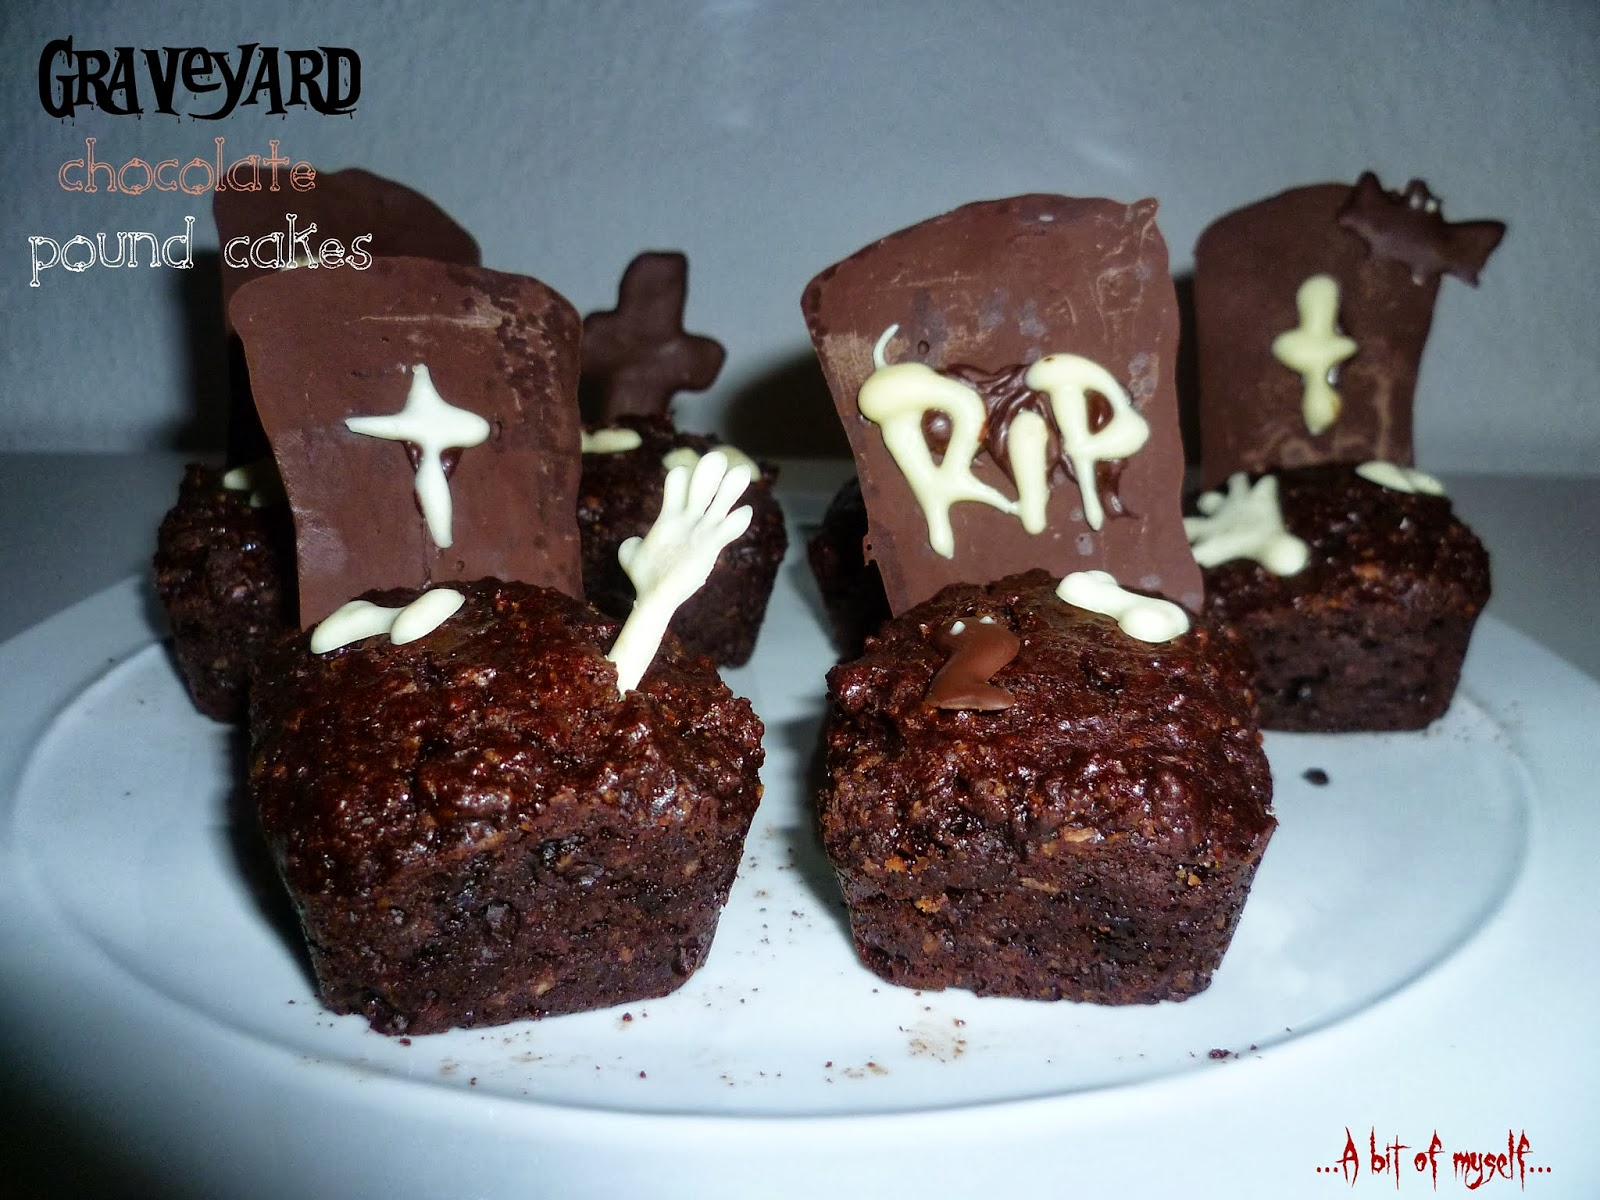 graveyard chocolate pound cakes